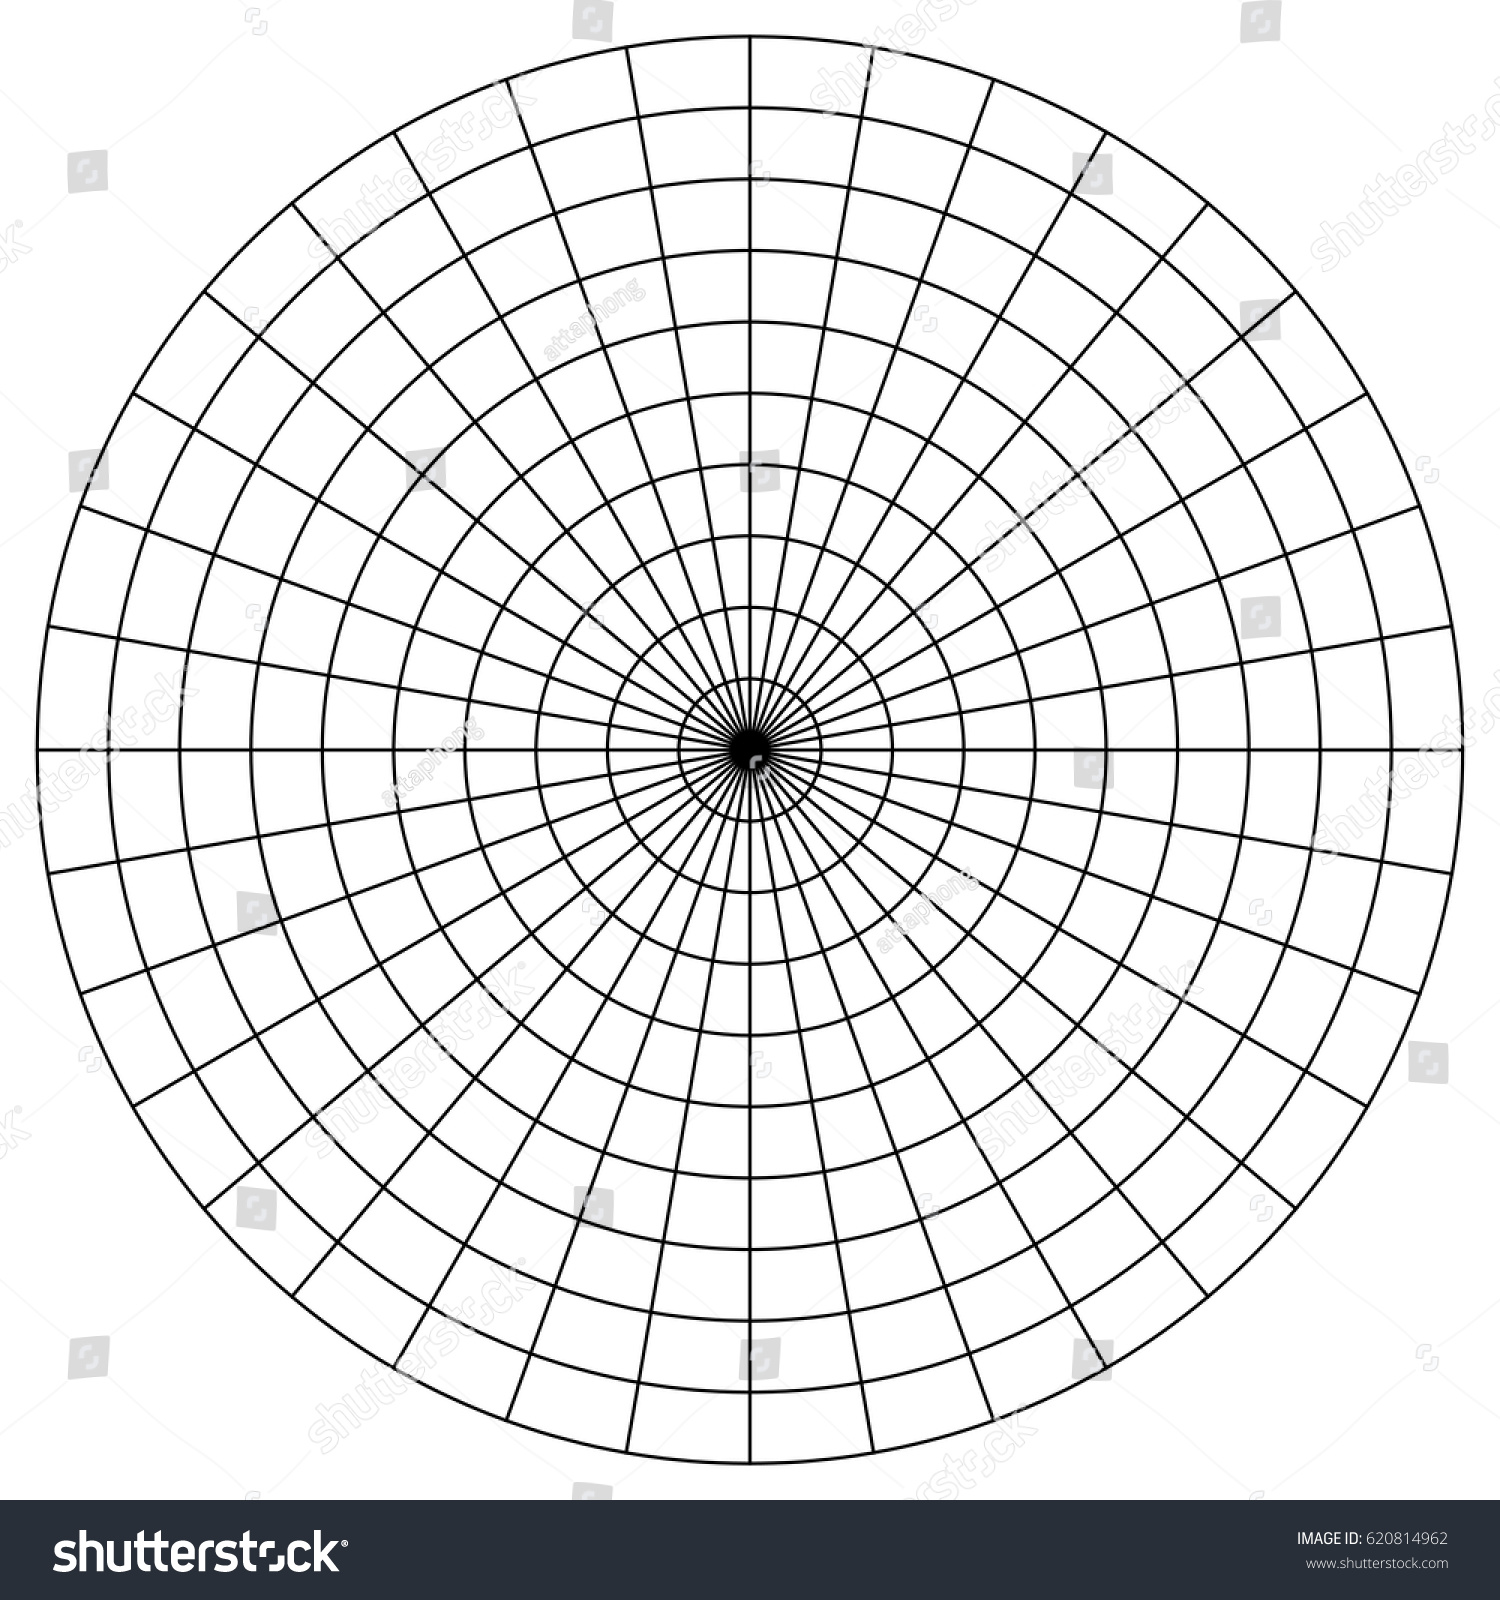 worksheet Polar Graph Paper 4 Per Page blank polar graph paper protractor letter for sponsorship sample pie stock vector 620814962 protractor